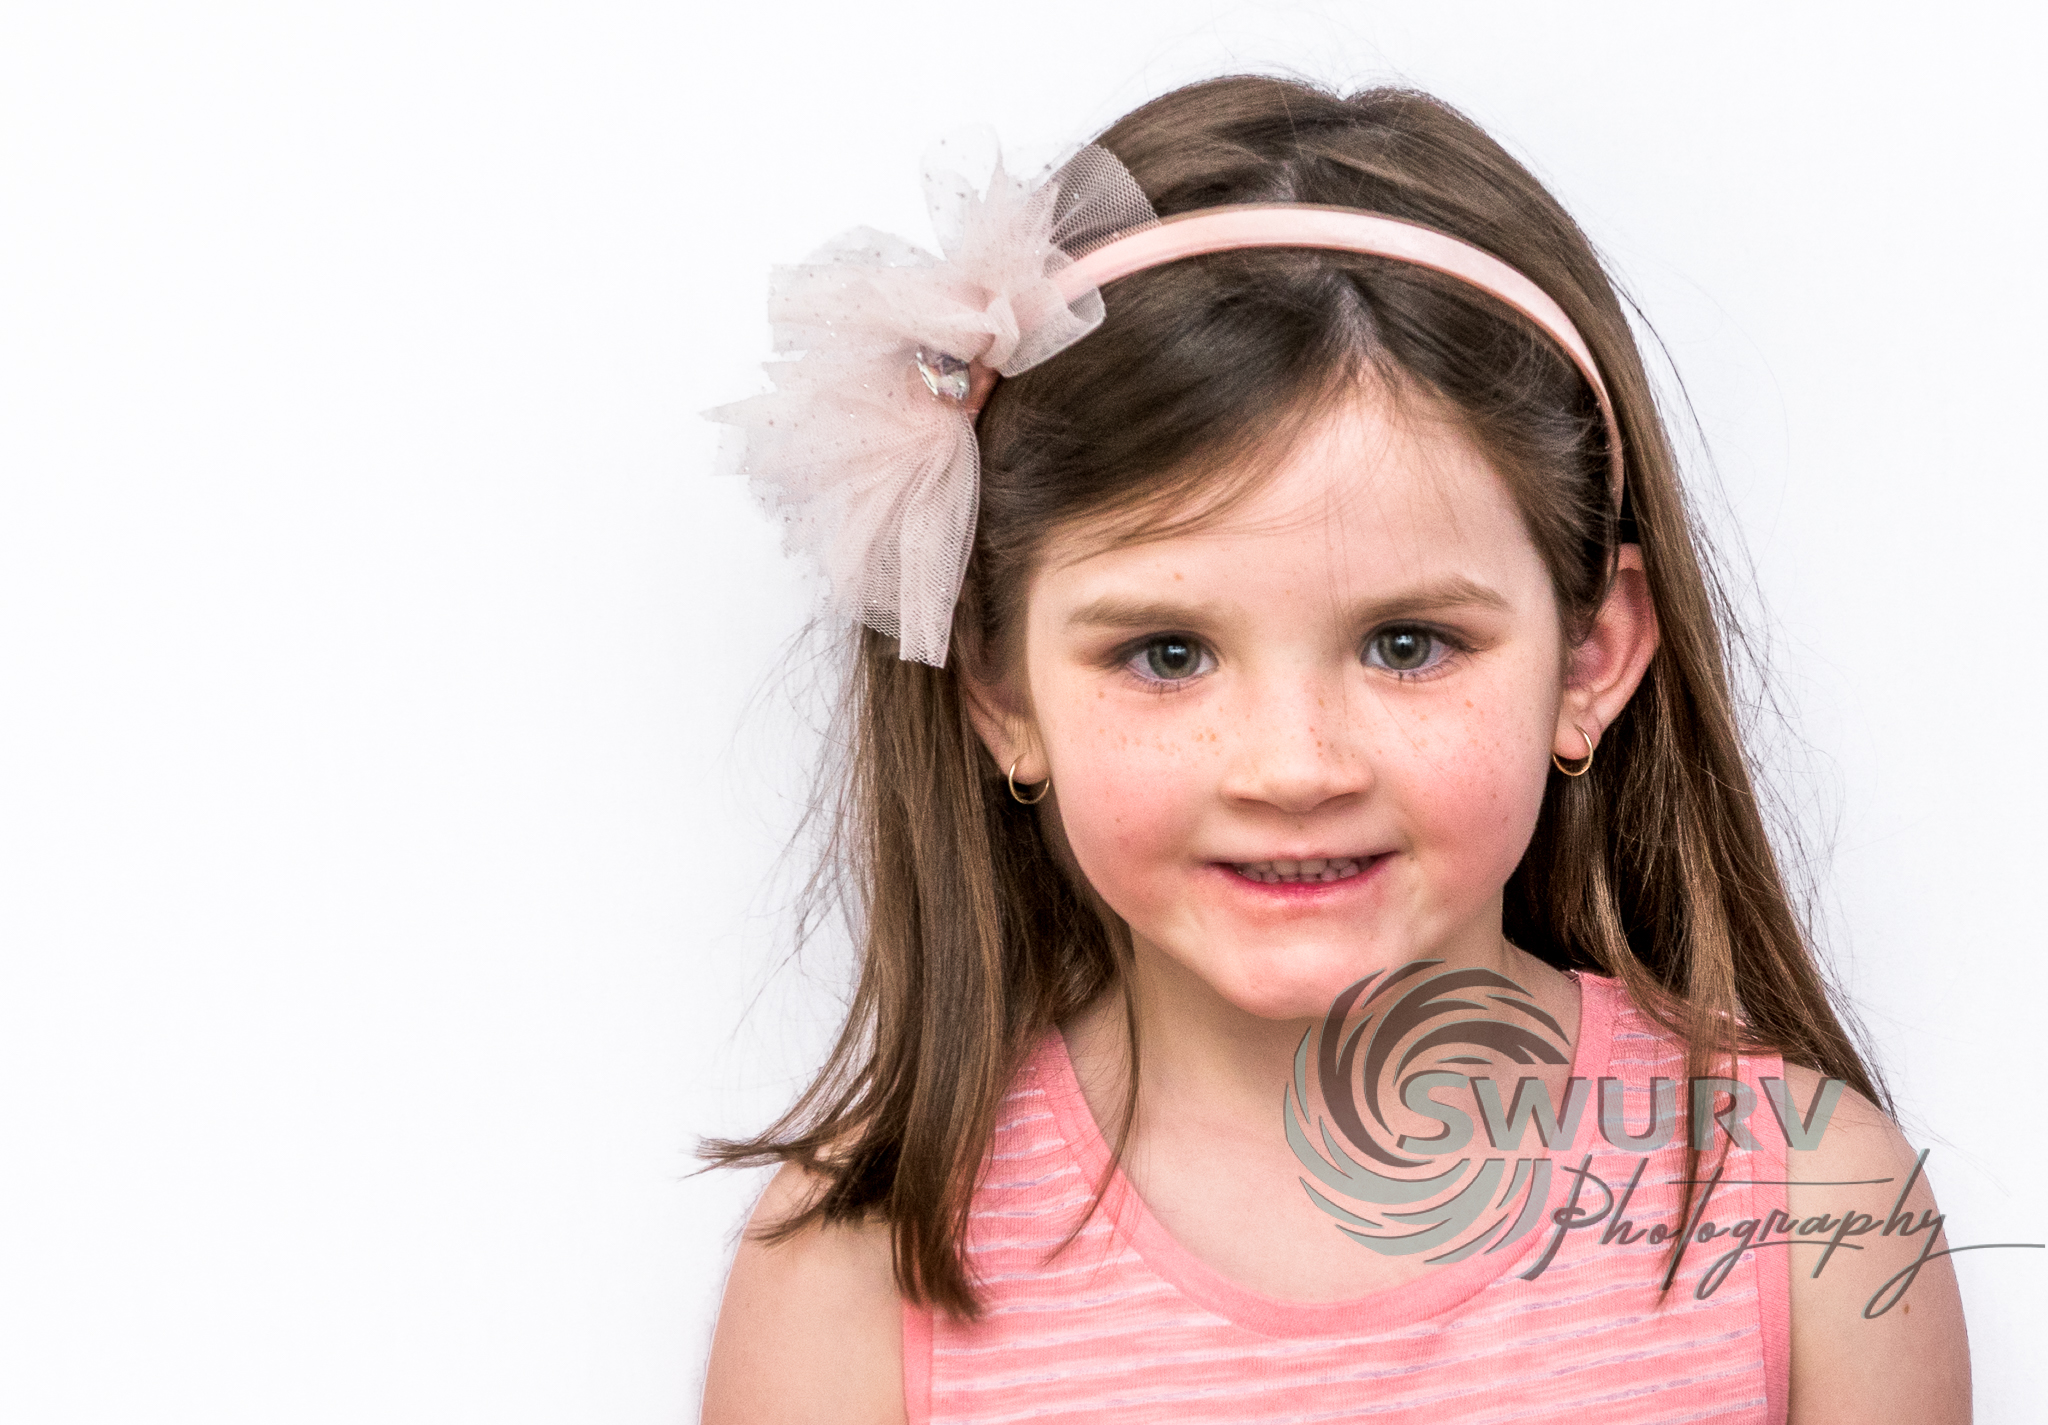 Kids Photography by Swurv